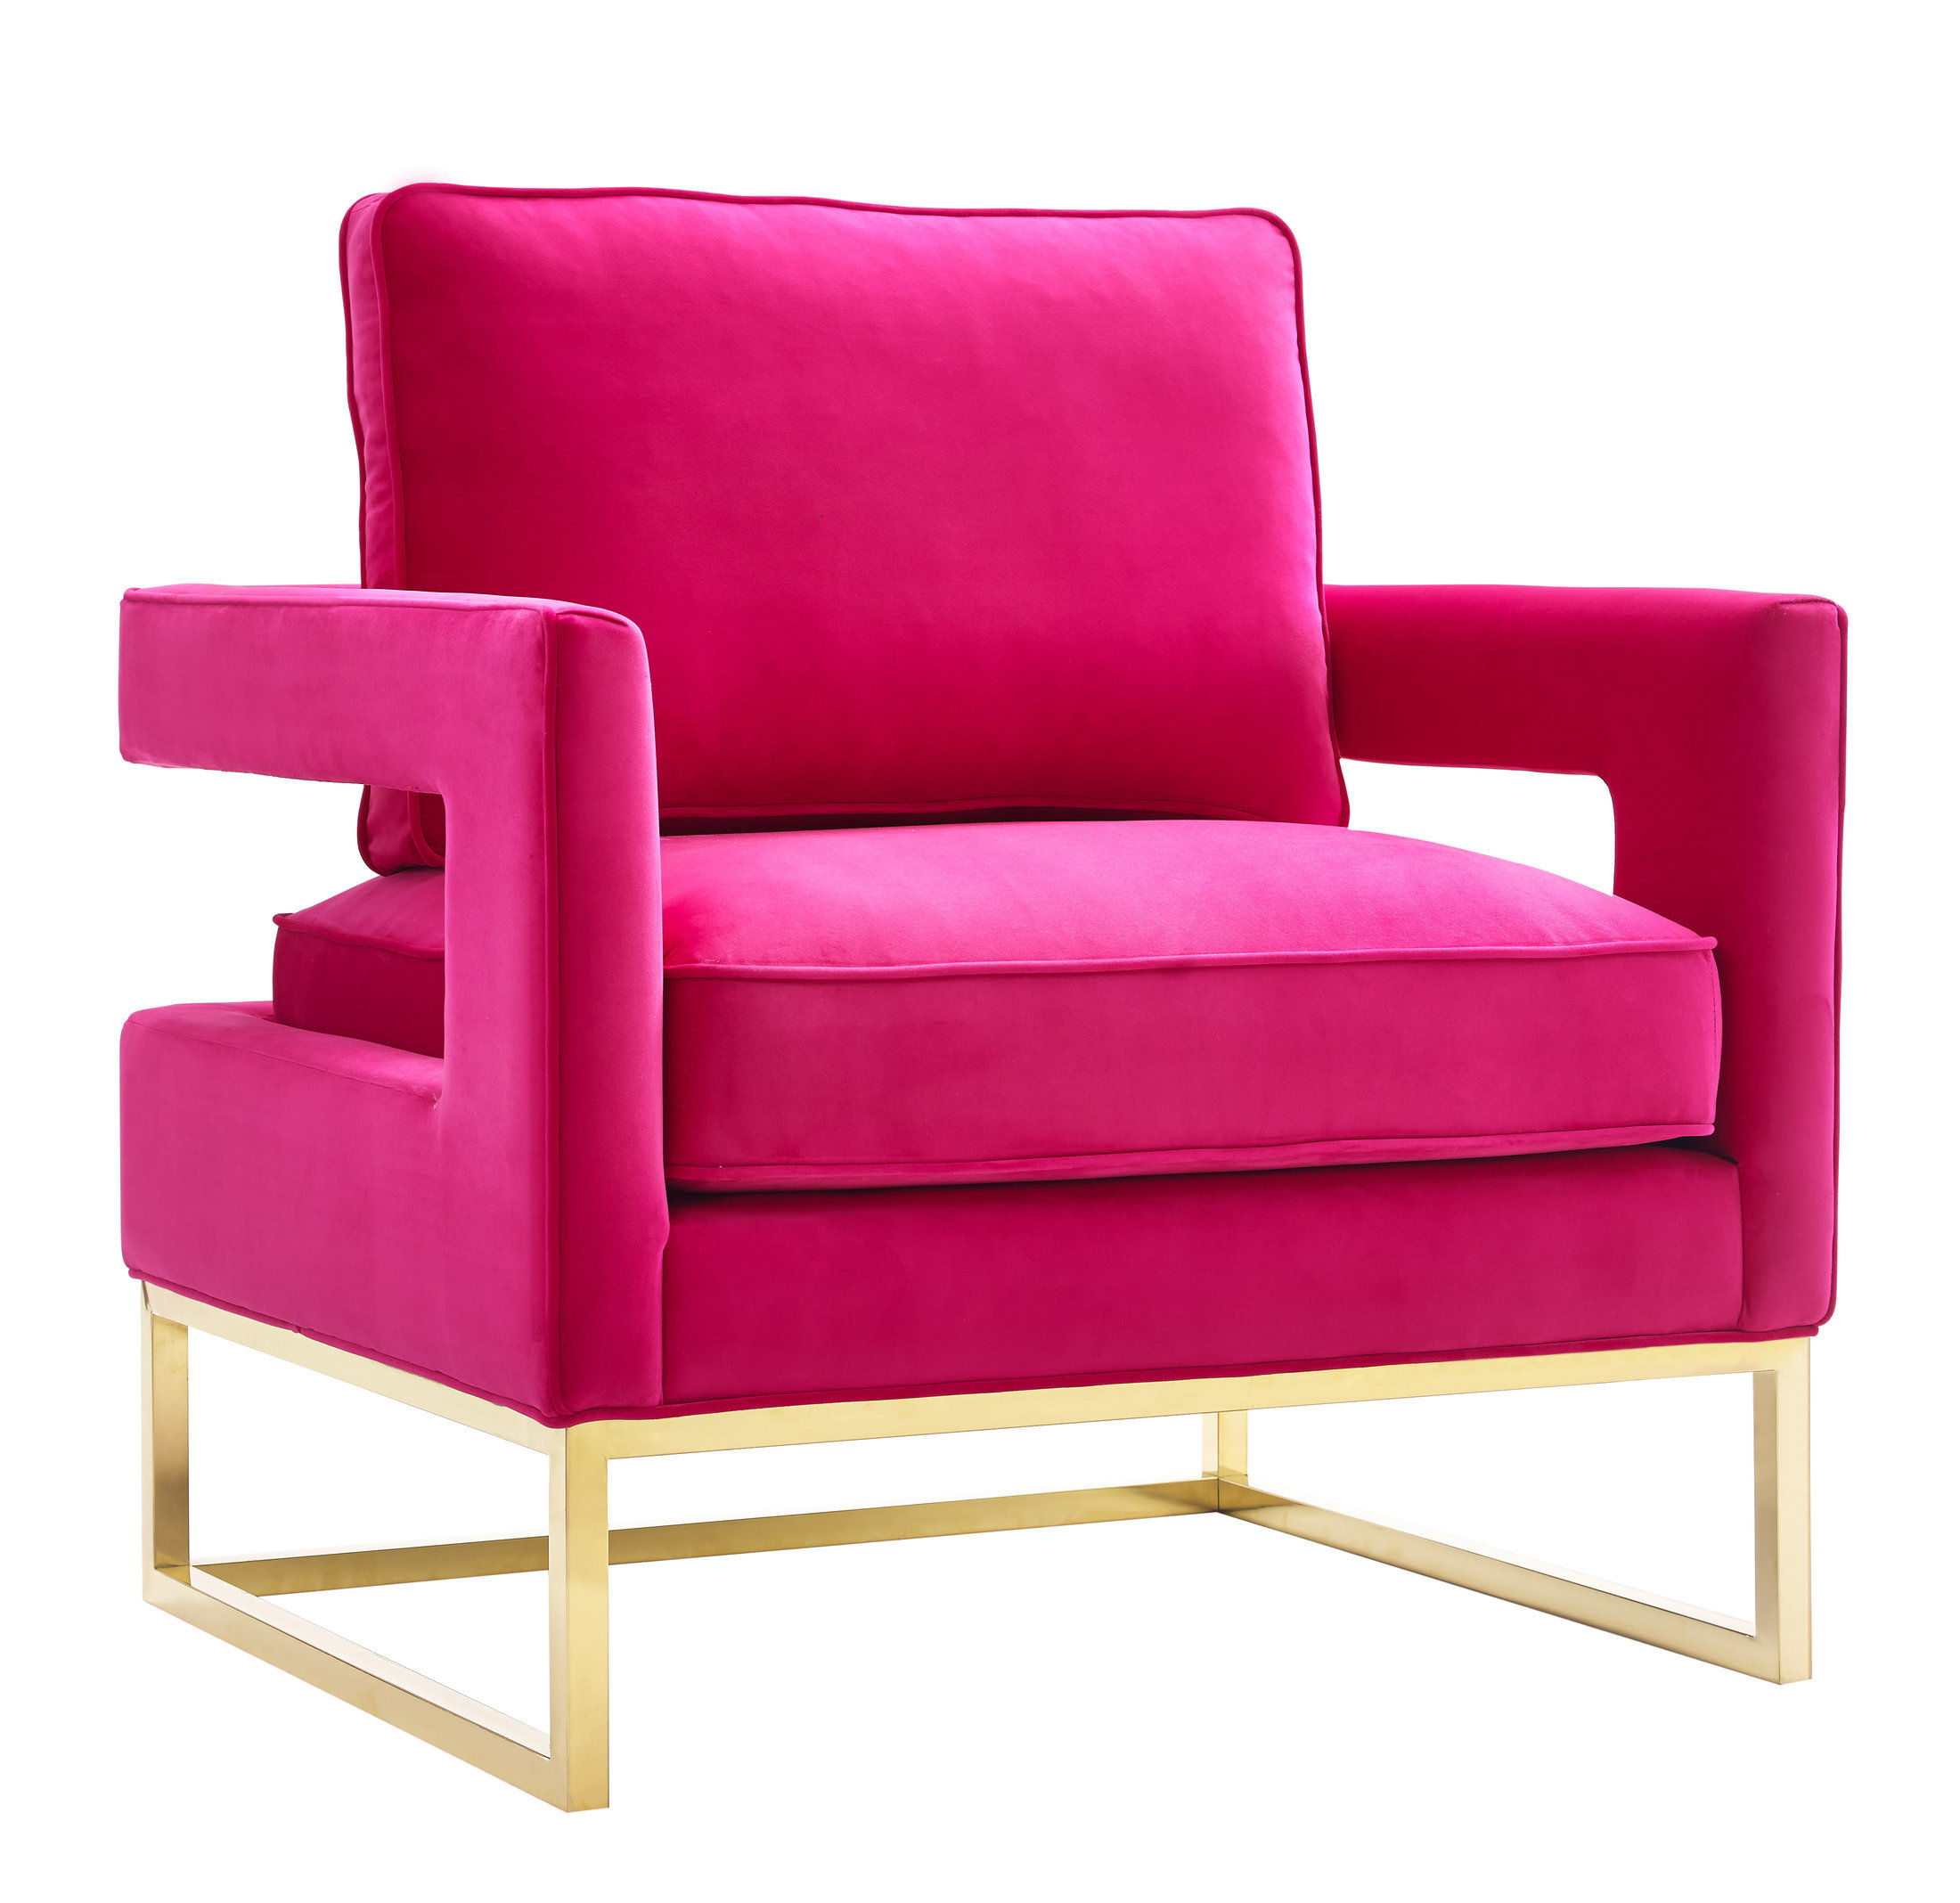 Tov Furniture Avery Pink Velvet Chair The Classy Home